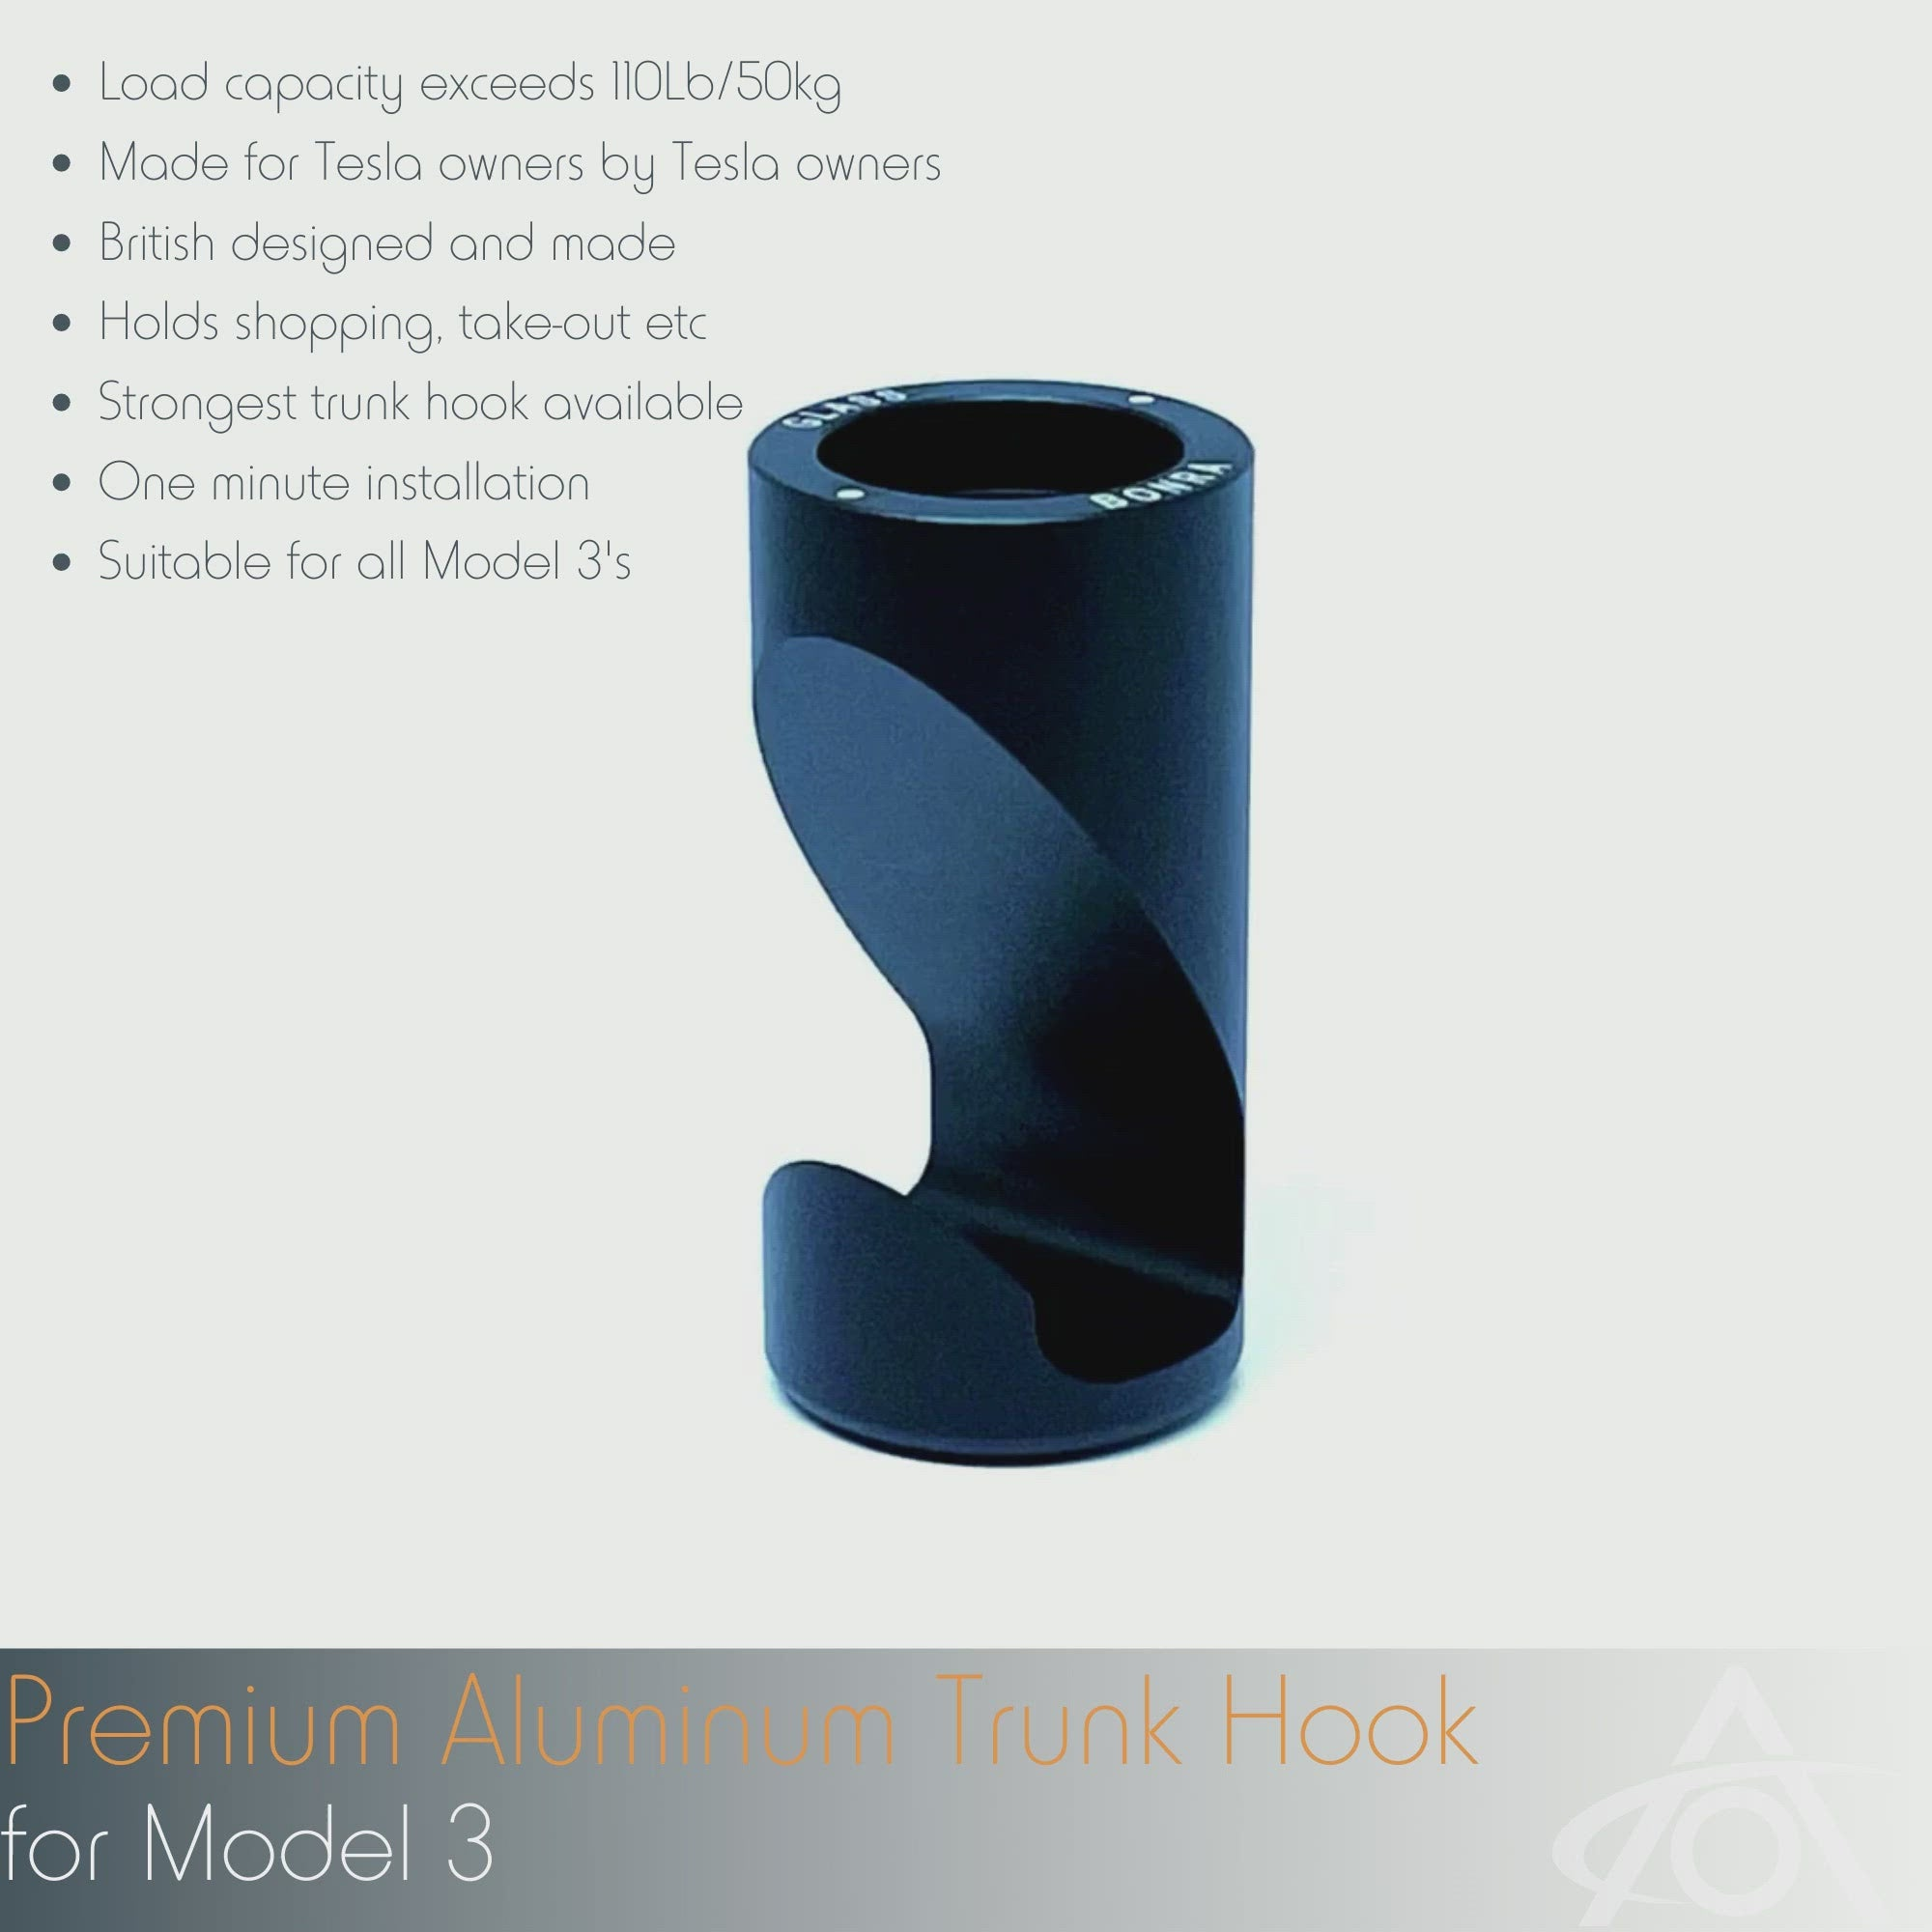 Premium Aluminum Trunk Hook